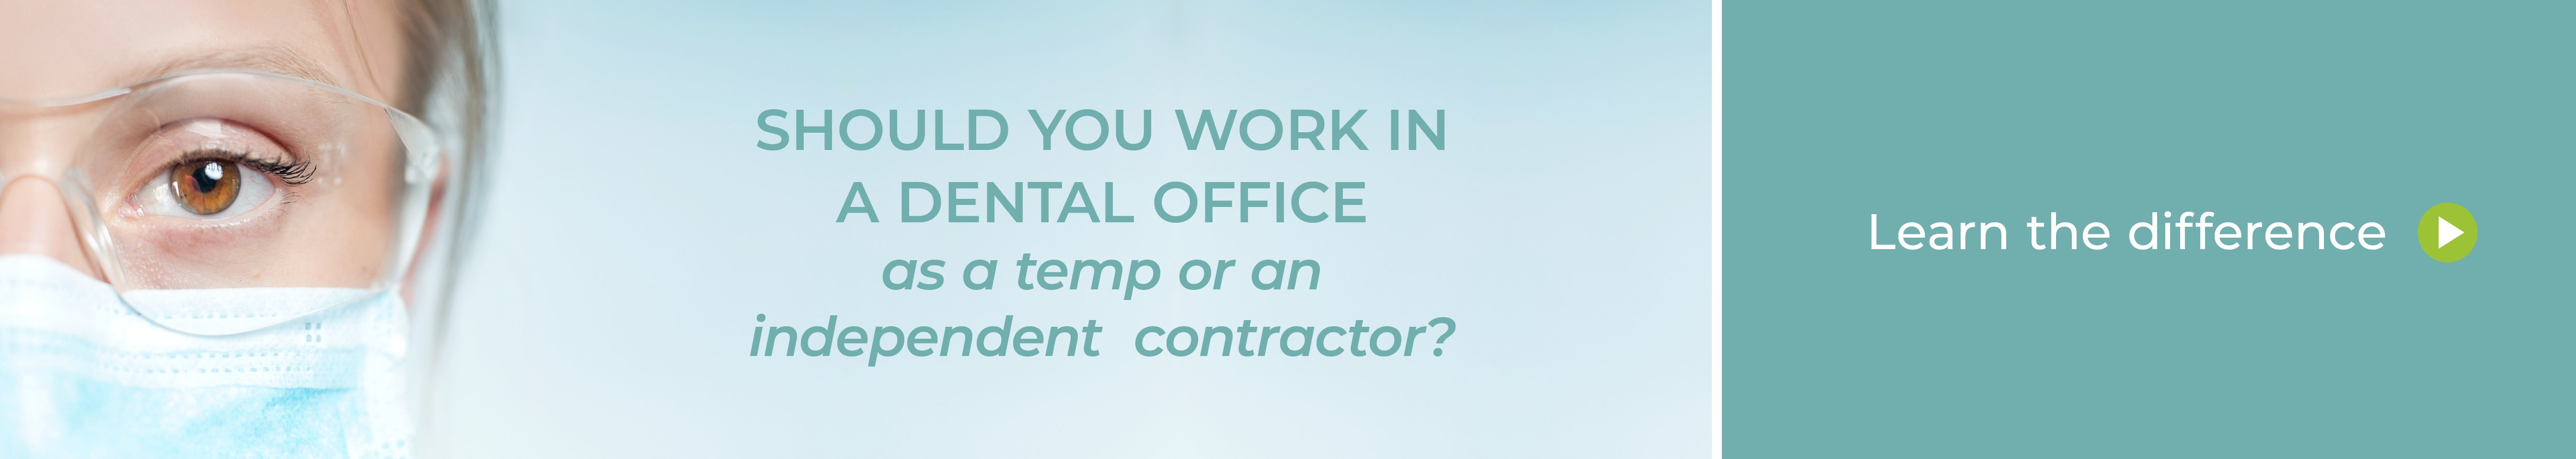 Free infographic download. Should you work in a dental office as a temp or an independent contractor?